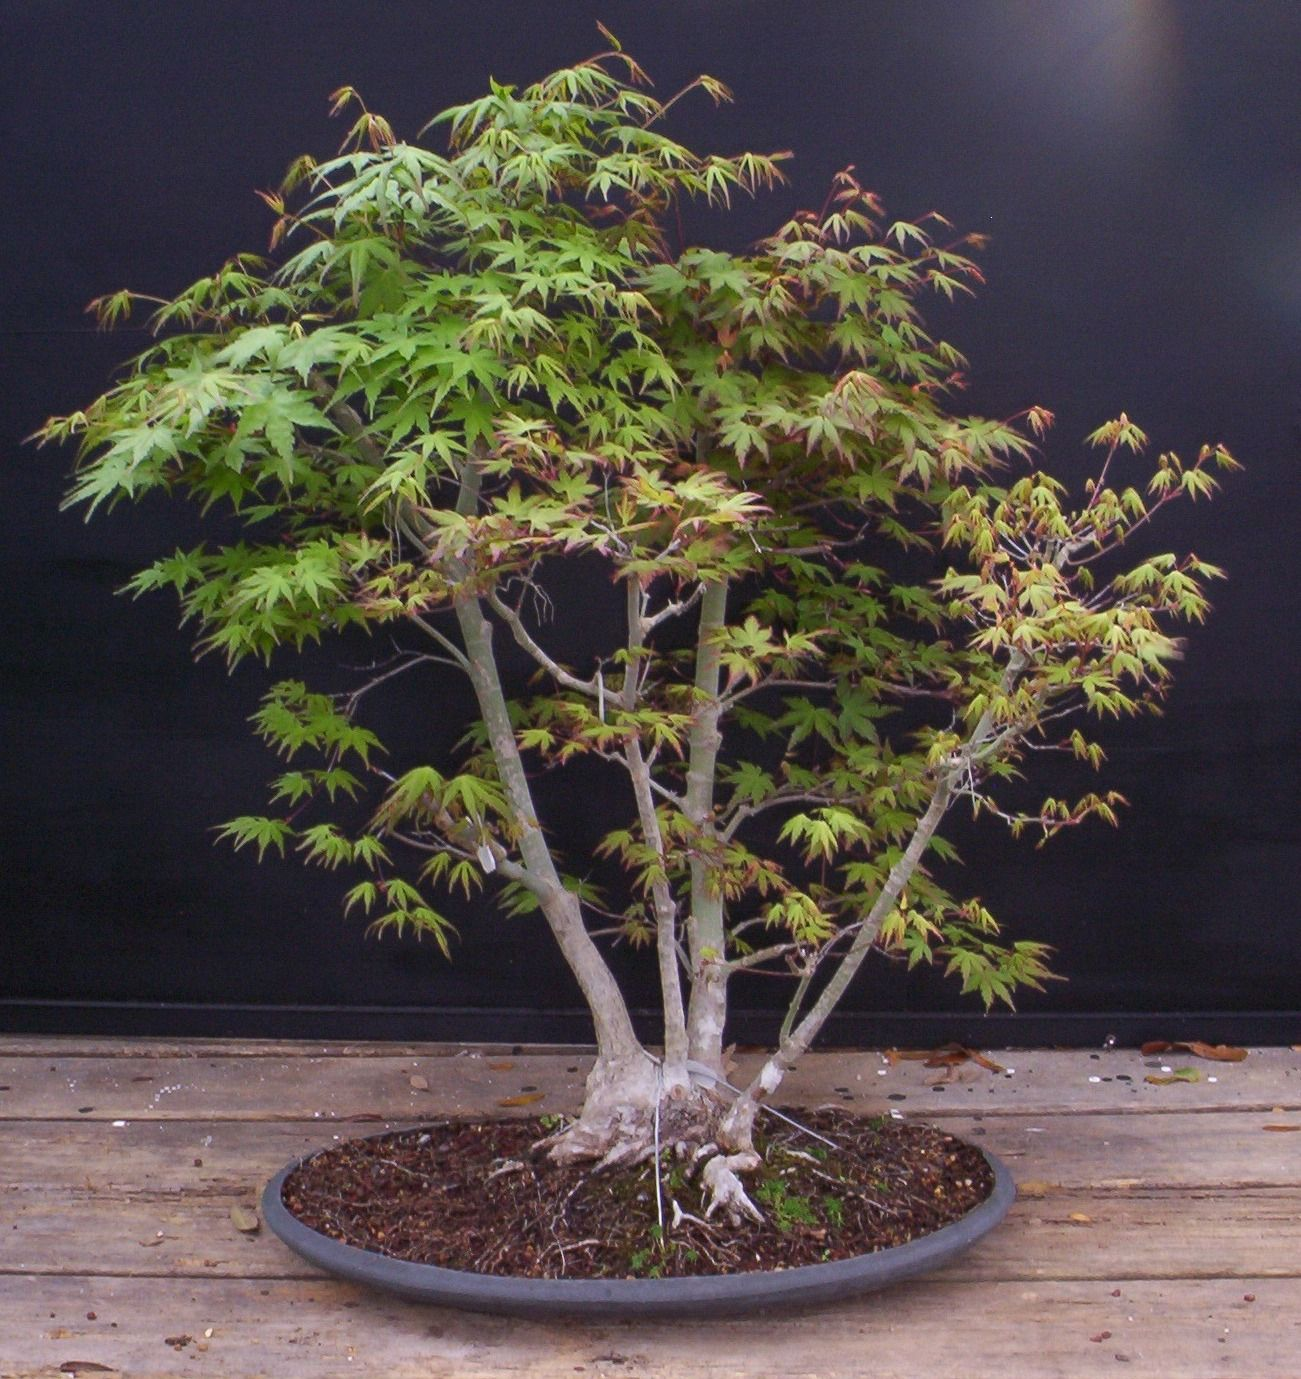 Bonsai Beginnings QuotBonsai Seedquot Collecting